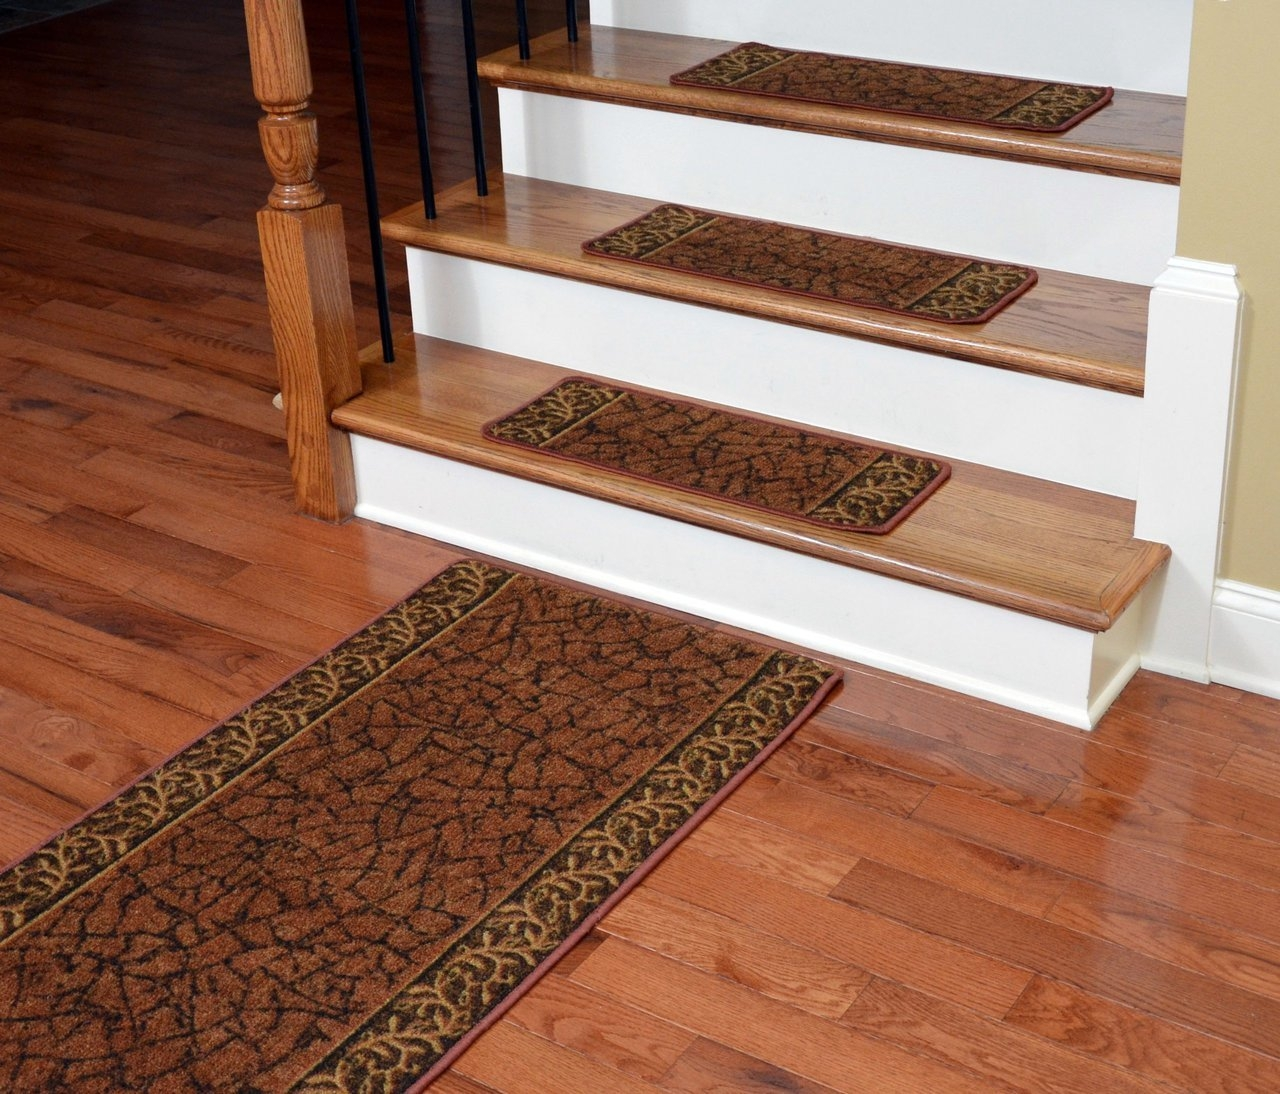 Dean Washable Non Skid Carpet Stair Treads Garden Path Terra With Non Skid Stair Treads Carpet (Photo 13 of 15)